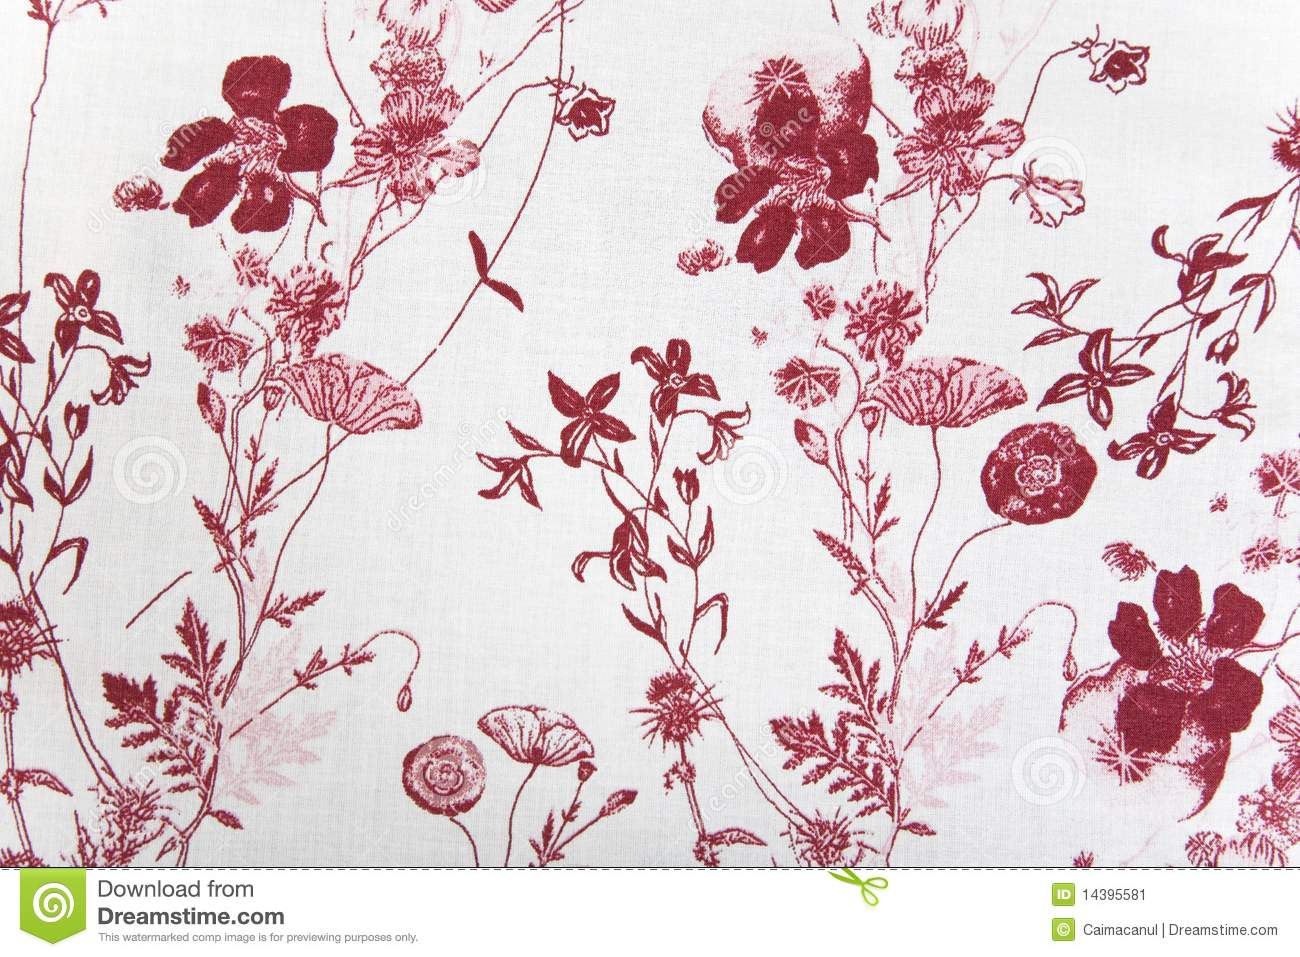 Flower fabric texture, red plants on white background.